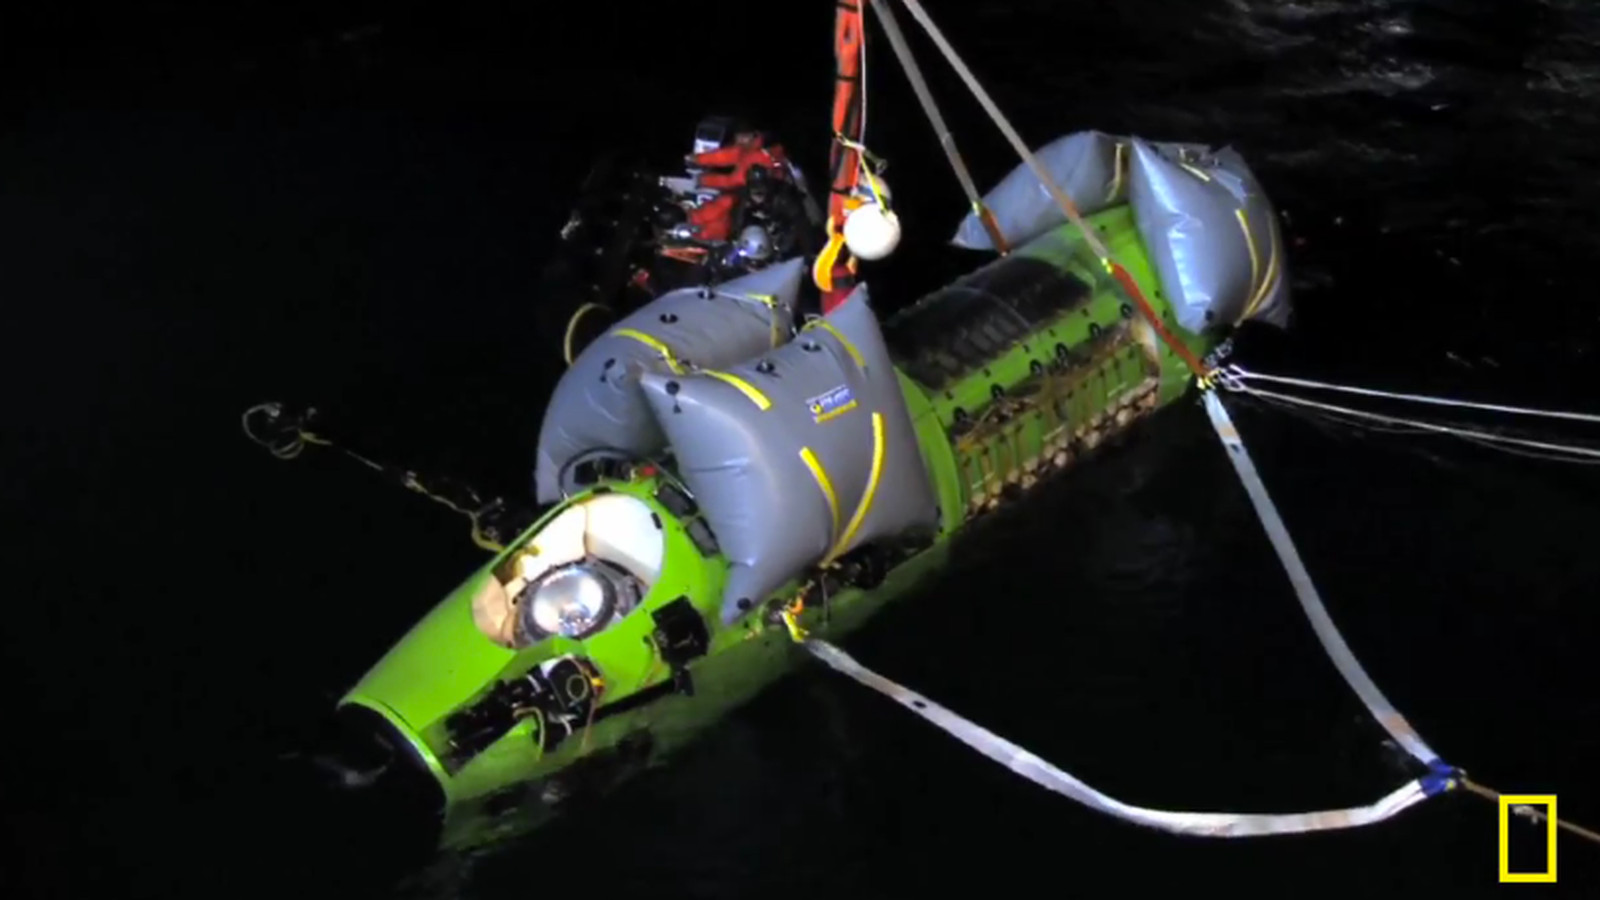 James Cameron Makes First Solo Voyage To The Mariana Trench The Ocean S Deepest Point The Verge